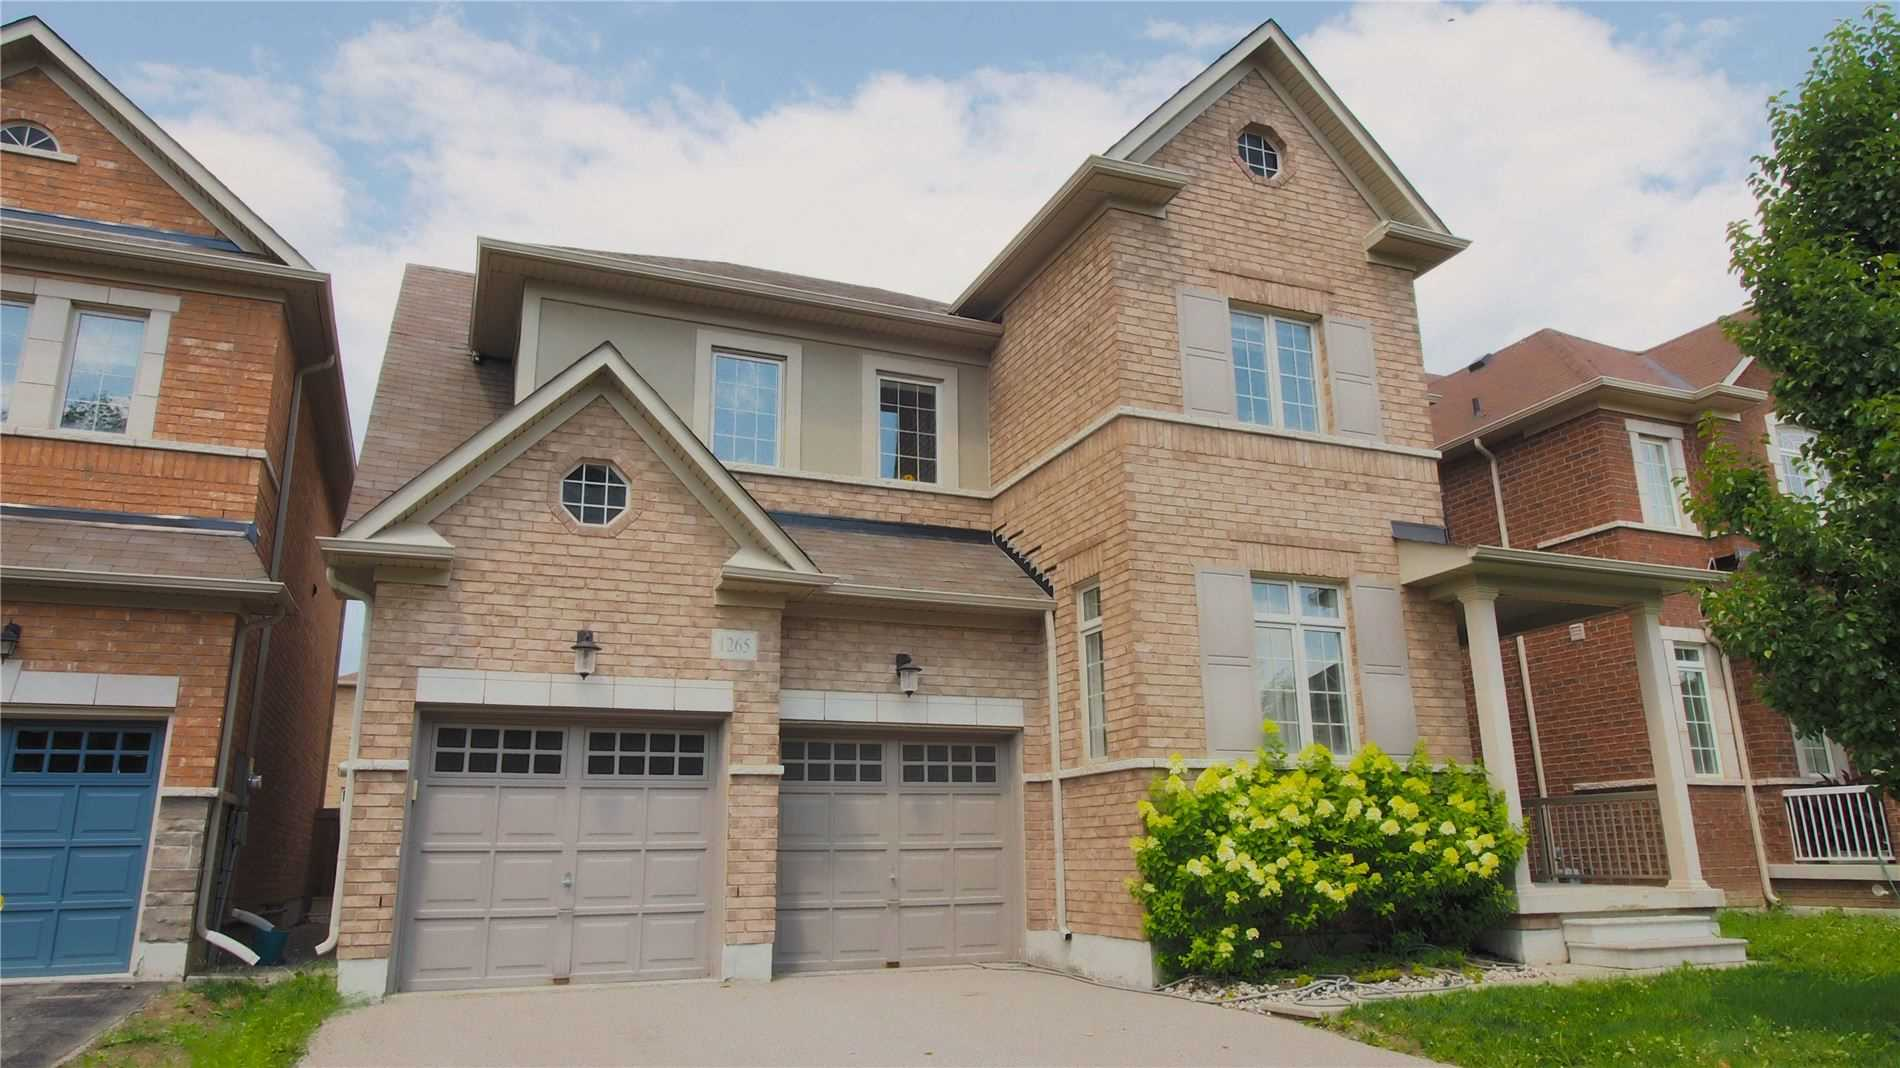 Detached house For Sale In Newmarket - 1265 Art Westlake Ave, Newmarket, Ontario, Canada L3X0C7 , 4 Bedrooms Bedrooms, ,4 BathroomsBathrooms,Detached,For Sale,Art Westlake